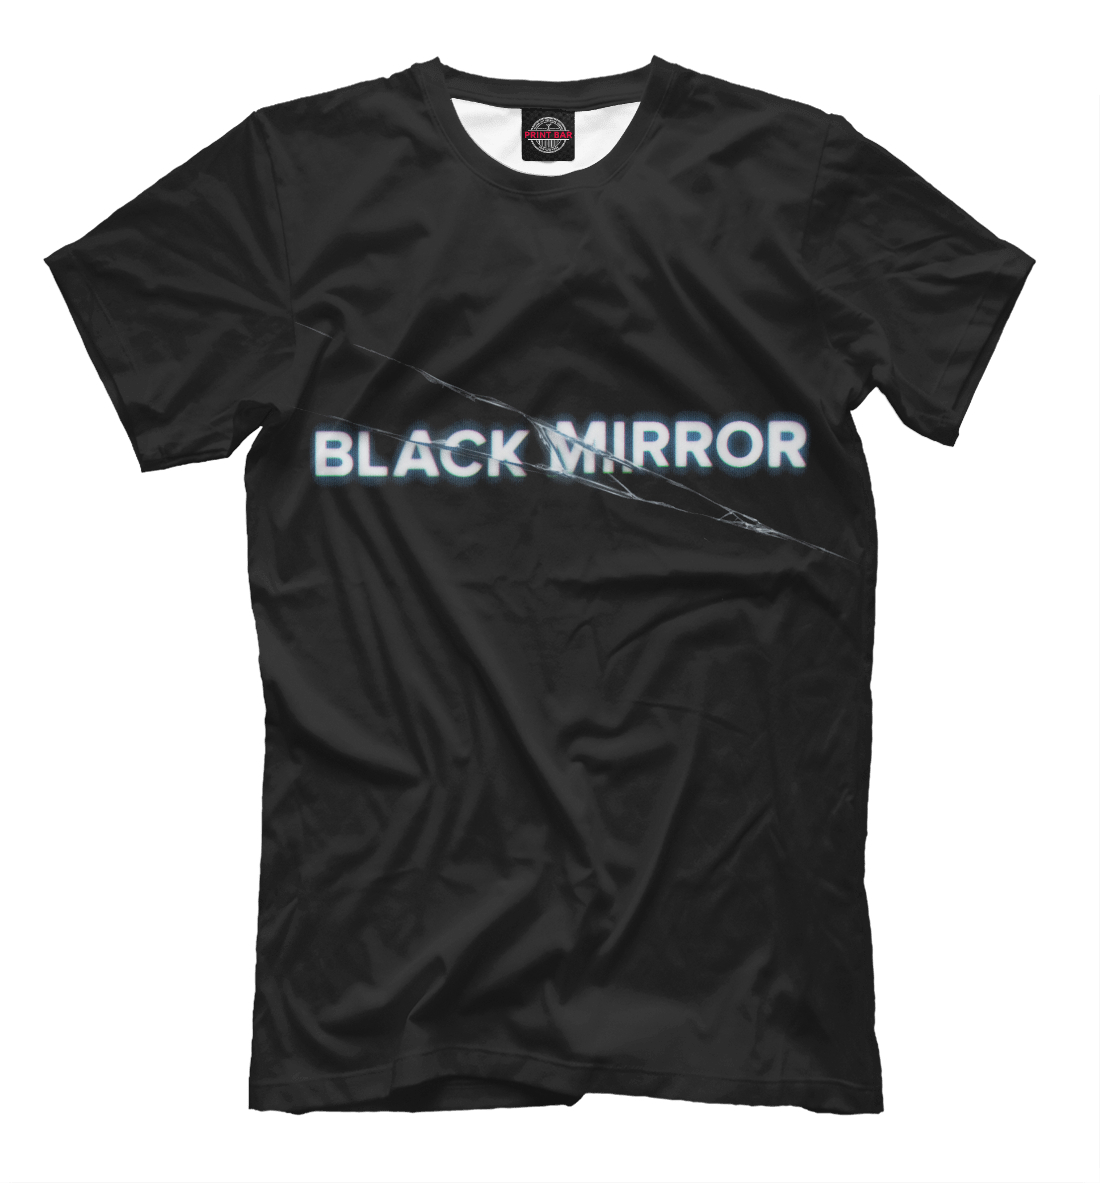 Купить Black Mirror, Printbar, Футболки, BLM-135333-fut-2